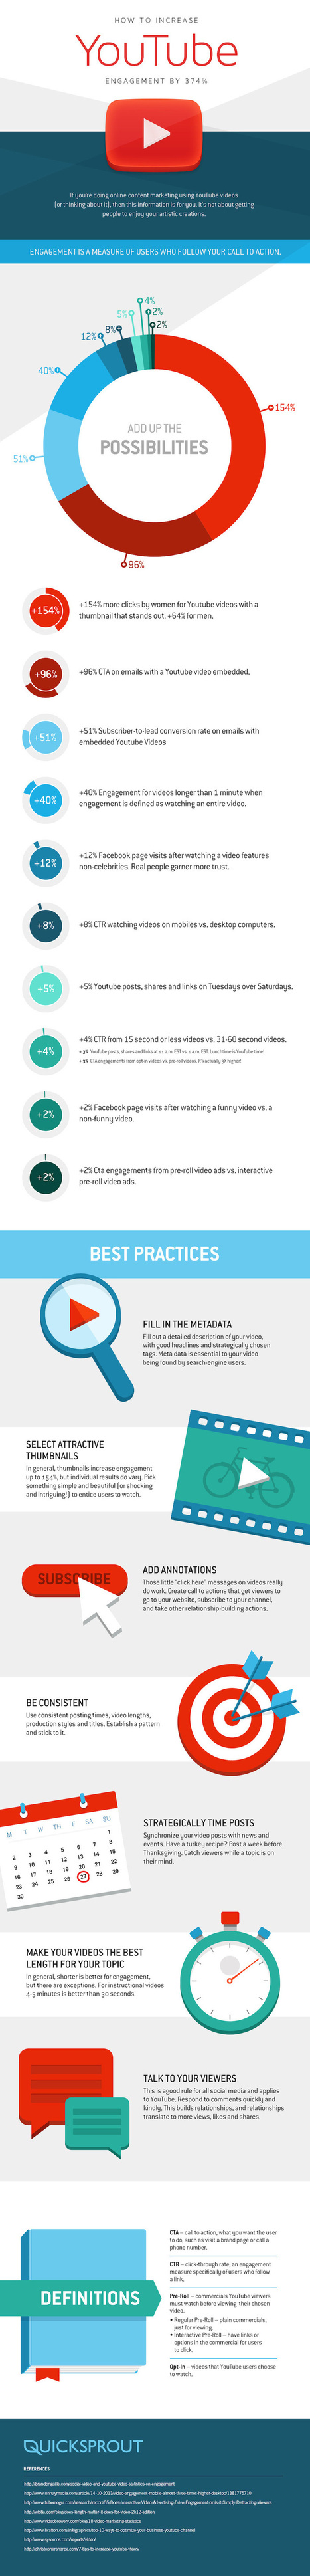 How to Increase Your YouTube Engagement by 374% [Infographic ]   Integrated Marketing Technologist   Scoop.it